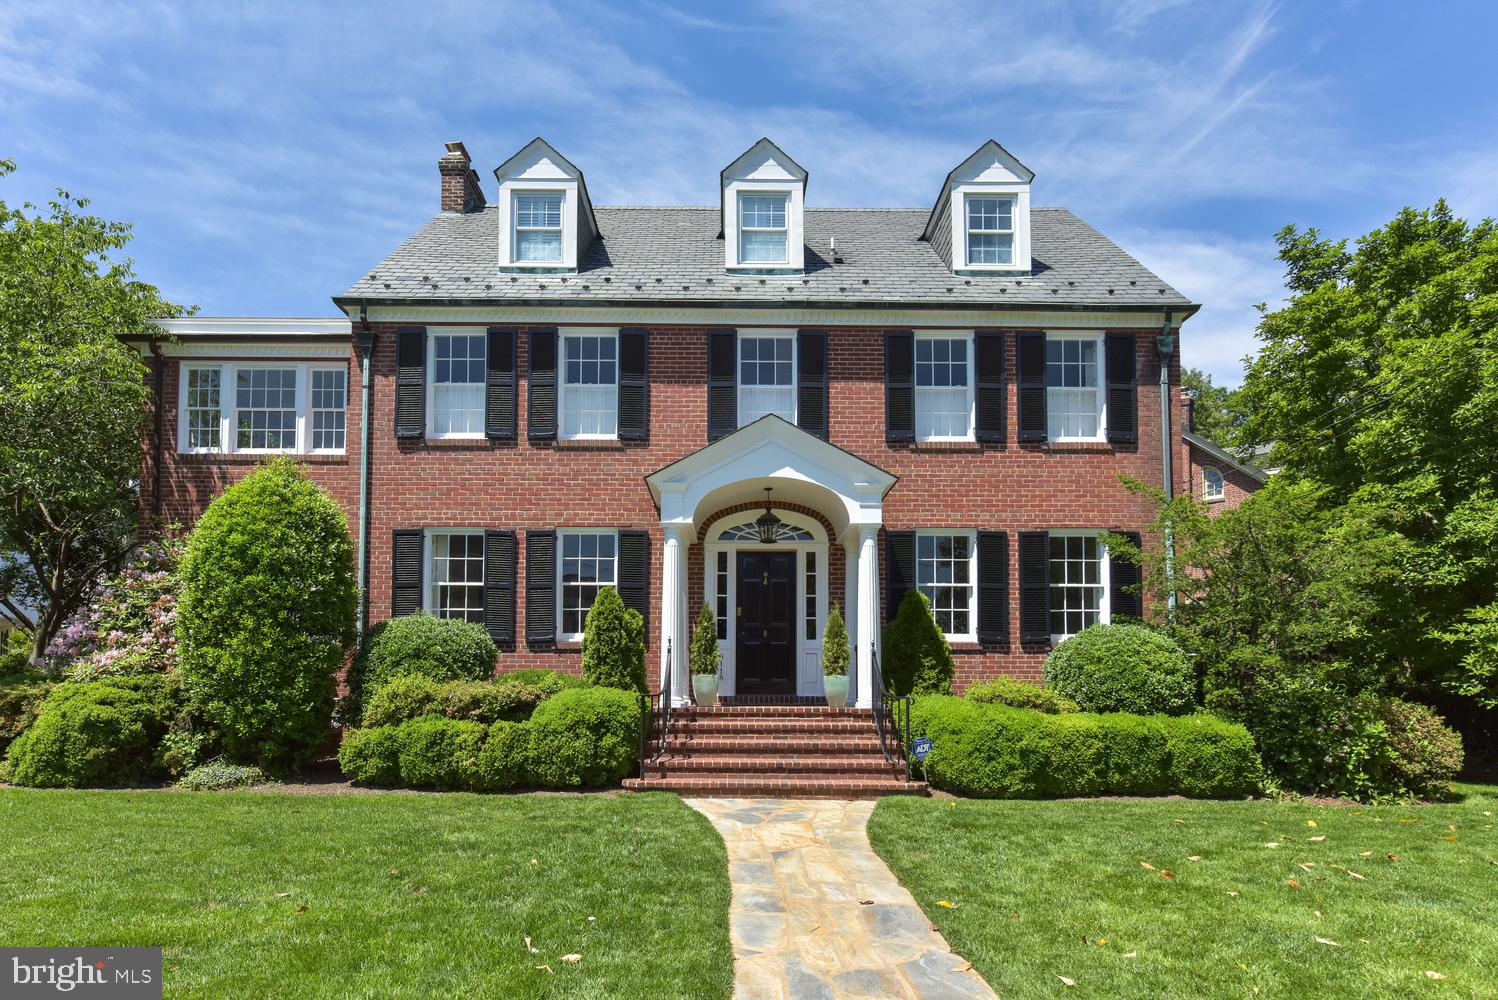 Gracious 5 bed, 4.5 bath 1930s brick colonial w/detached 2-car garage in picturesque Belle Haven. History meets levity: stately architecture balanced by sunny windows, skylights & shimmering French doors. Grand 9-foot ceilings & HW floors thru-out. Elegant wainscoting & moldings. Contemporary updates include custom built-ins, apothecary-style master bath & magazine-worthy kitchen. Formal dining, cozy living & private work/play spaces. Organization galore in the mudroom, finished basement, ample closets. Spacious kitchen w/eat-in window banquette, island w/range & seating, immaculate white cabinetry. Outdoor entertaining simplified by the bricked patio, manicured lawn.